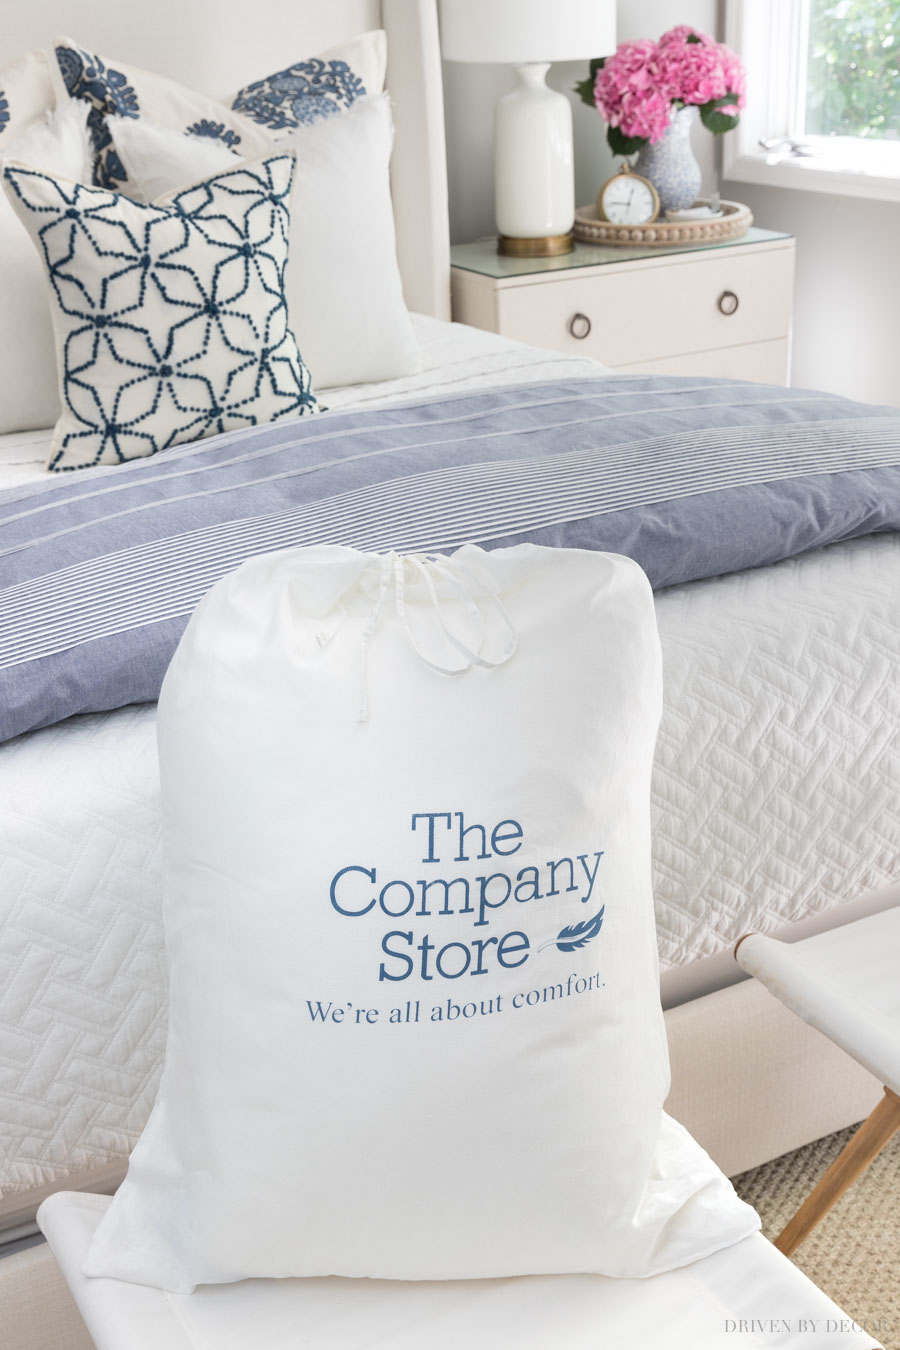 Great advice on the best bed pillows - love that these come with a storage bag!